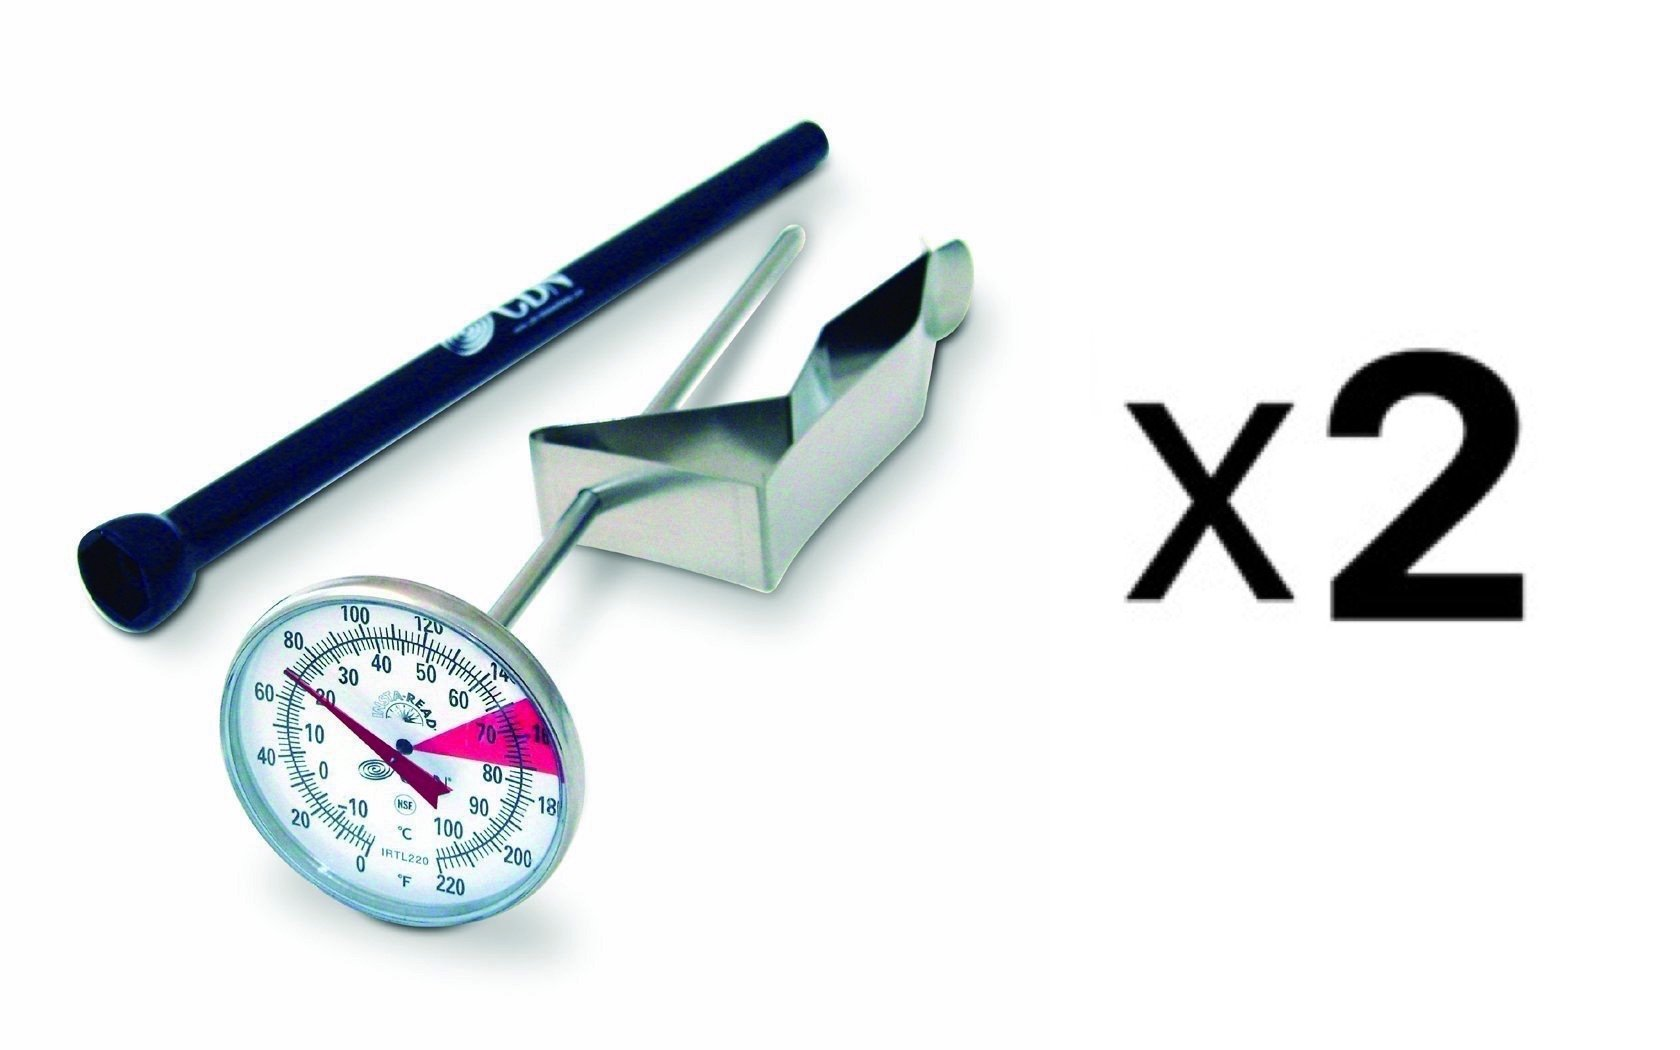 CDN IRTL220 Proaccurate Insta Read Beverage and Frothing Thermometer - Set of 2